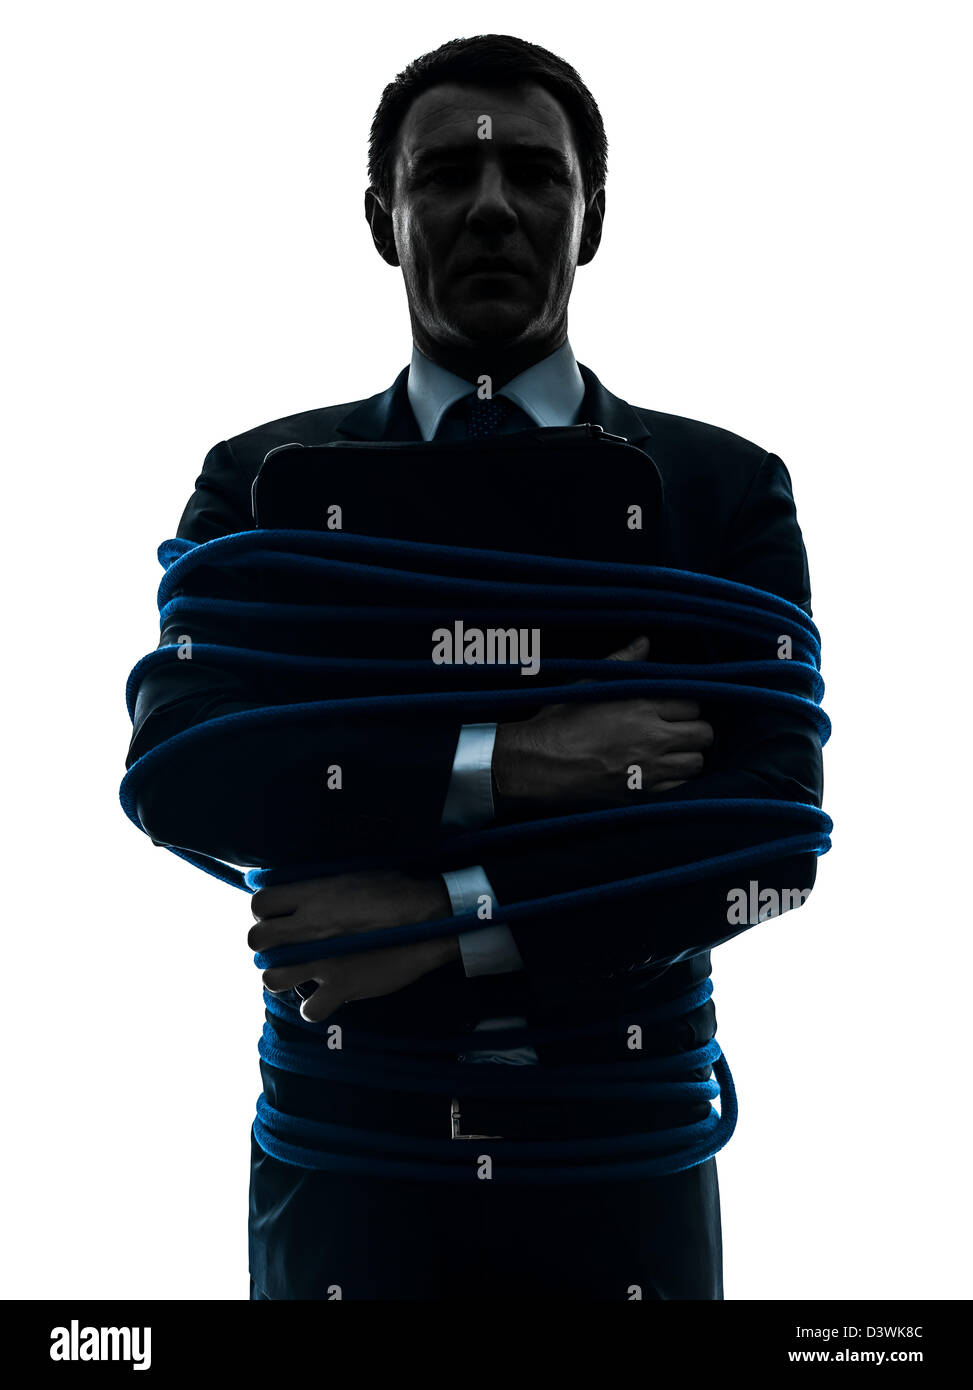 one  business man tied up prisoner in silhouette studio isolated on white background - Stock Image